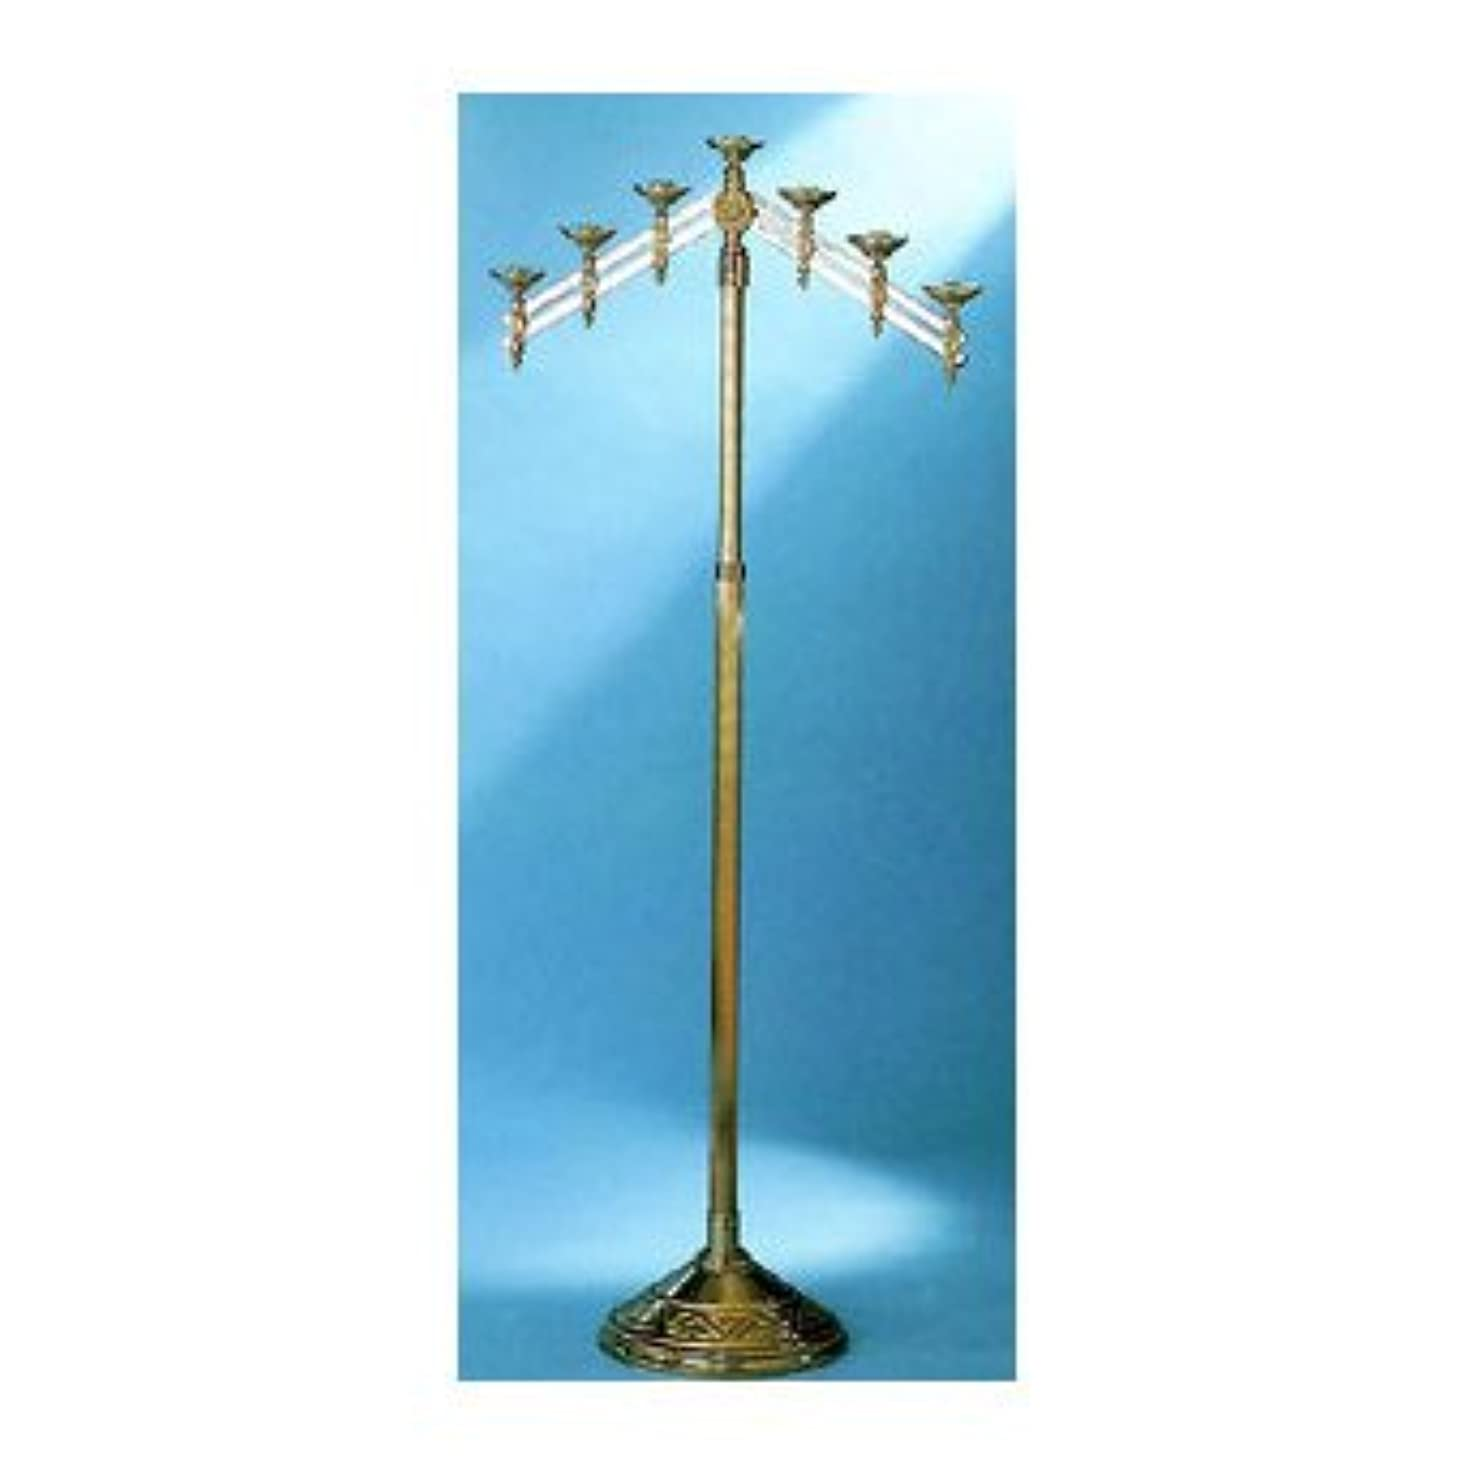 封建ベアリングサークルテザー教会床燭台with Adjustable Arms Metal Finish: 7-Lite, High Polish Bronze 24012-7-BZ